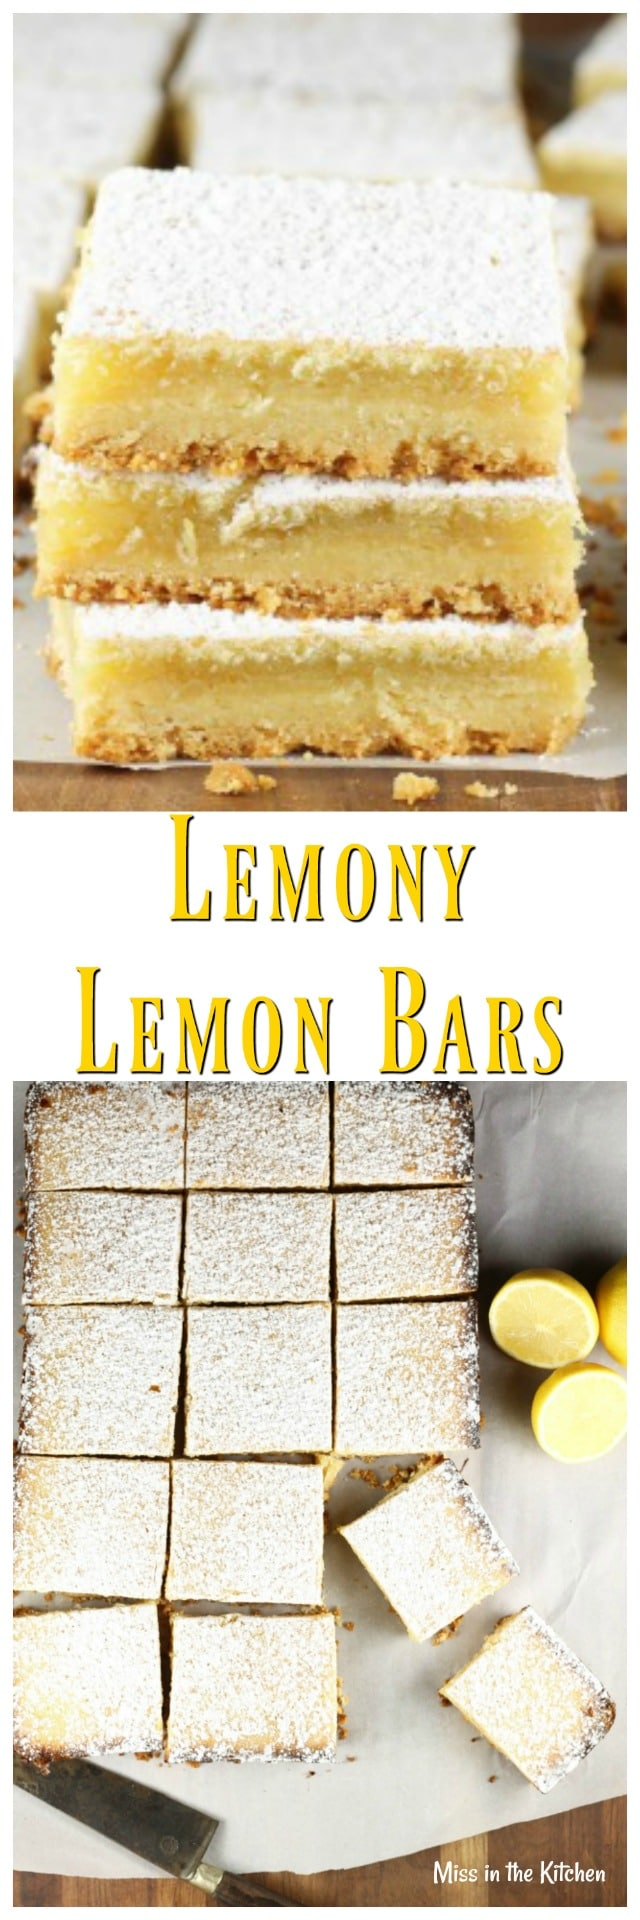 Recipe for Lemony Lemon Bars from The Easy Homemade Cookie Cookbook ~ MissintheKitchen.com